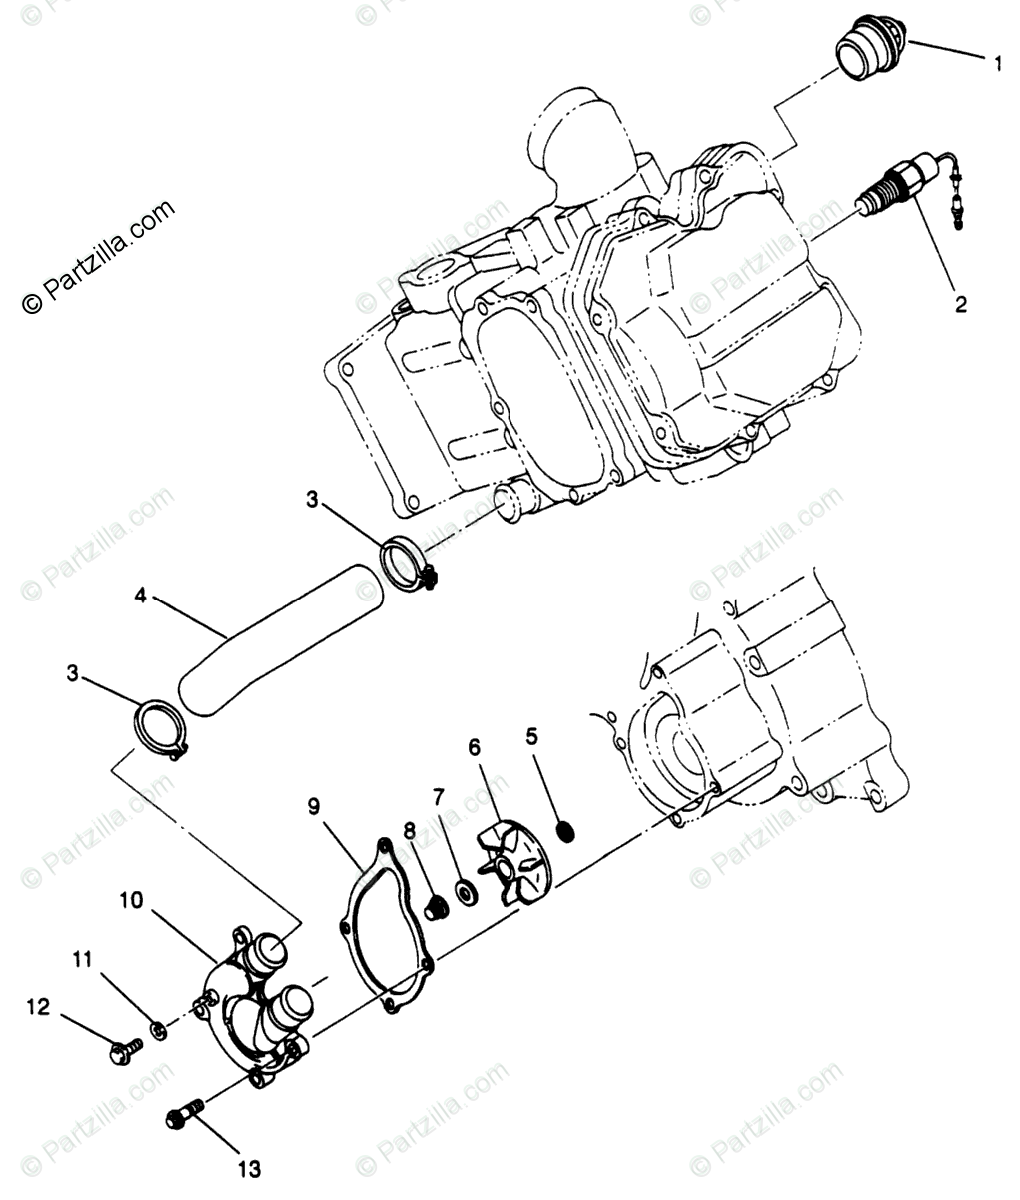 [SM_9546] 1995 Polaris 300 4X4 Wiring Diagram Free